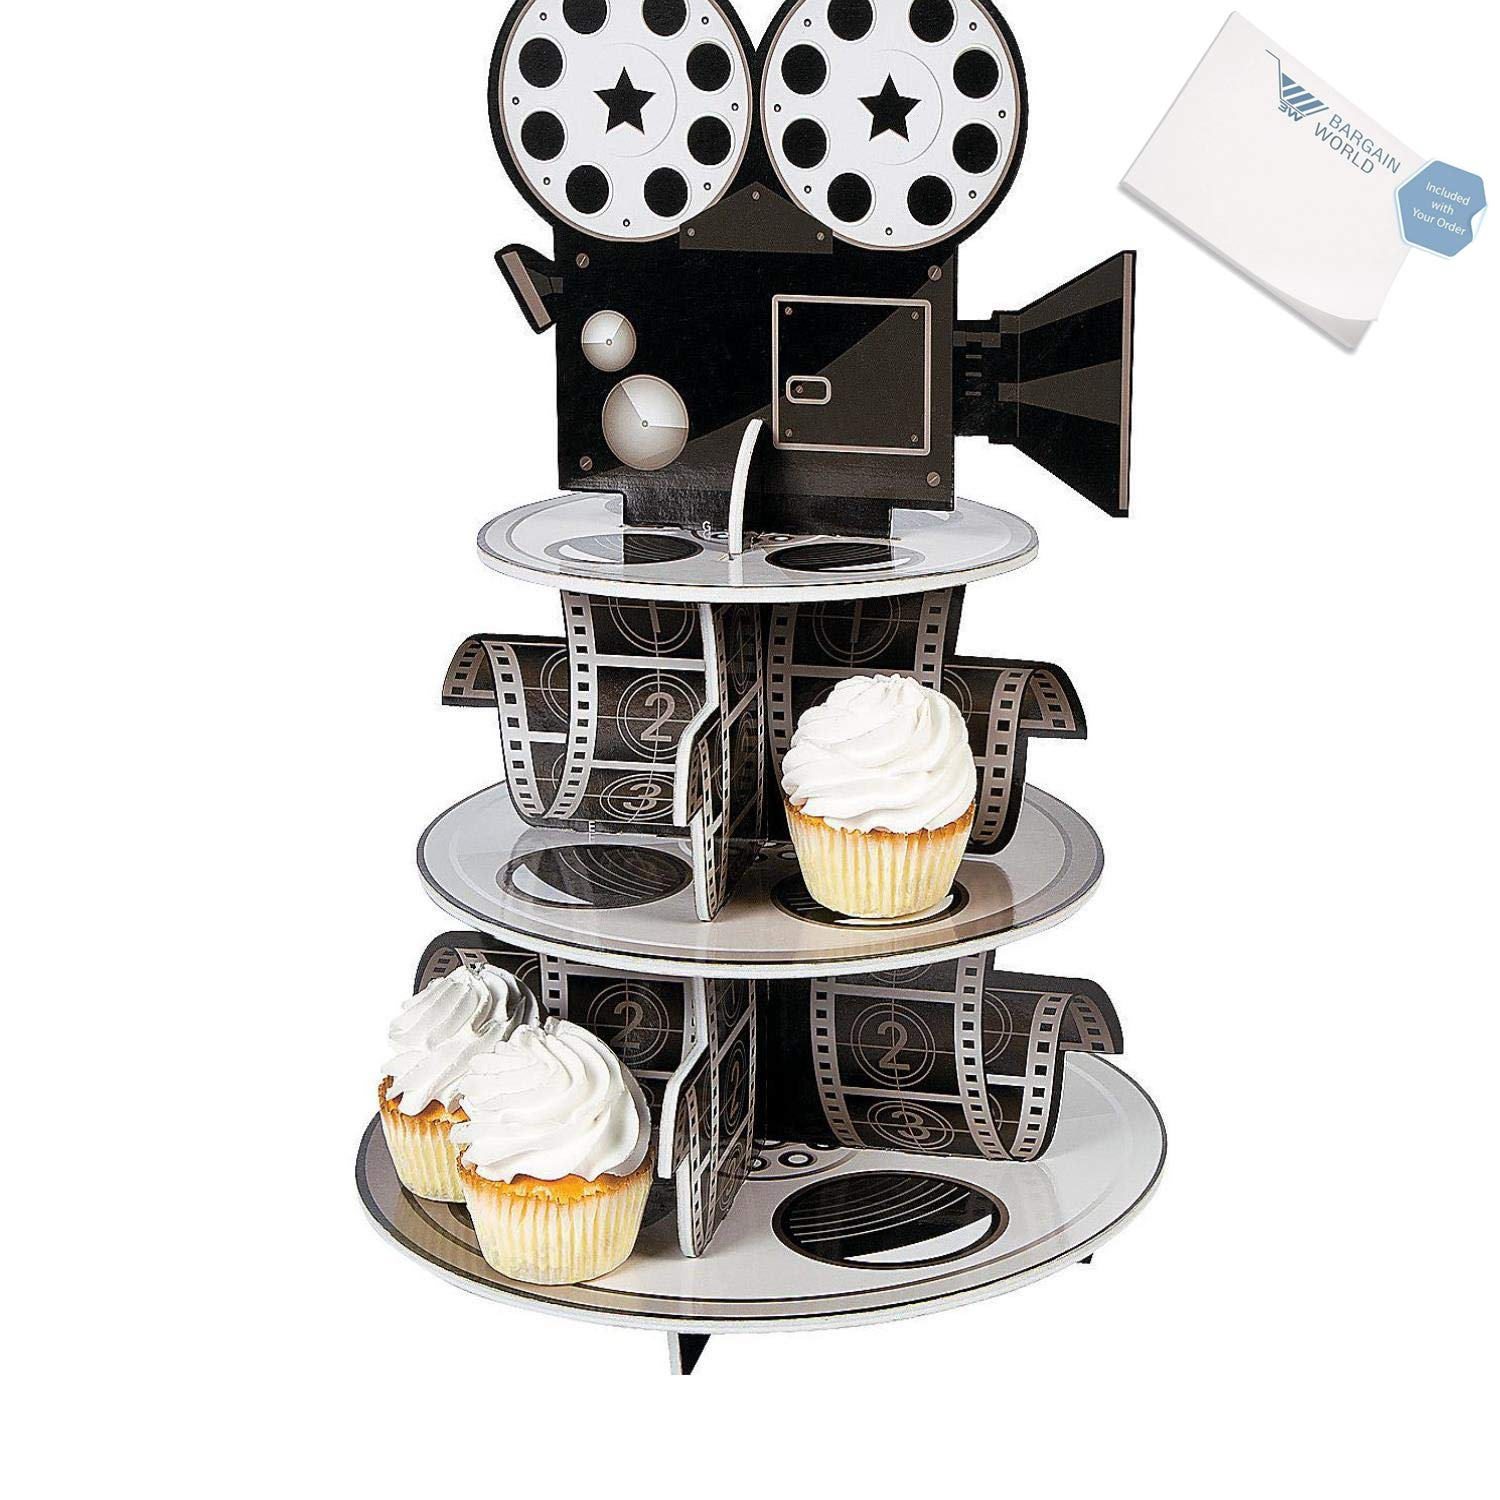 Bargain World Foam Movie Reel Cupcake Holder (With Sticky Notes)